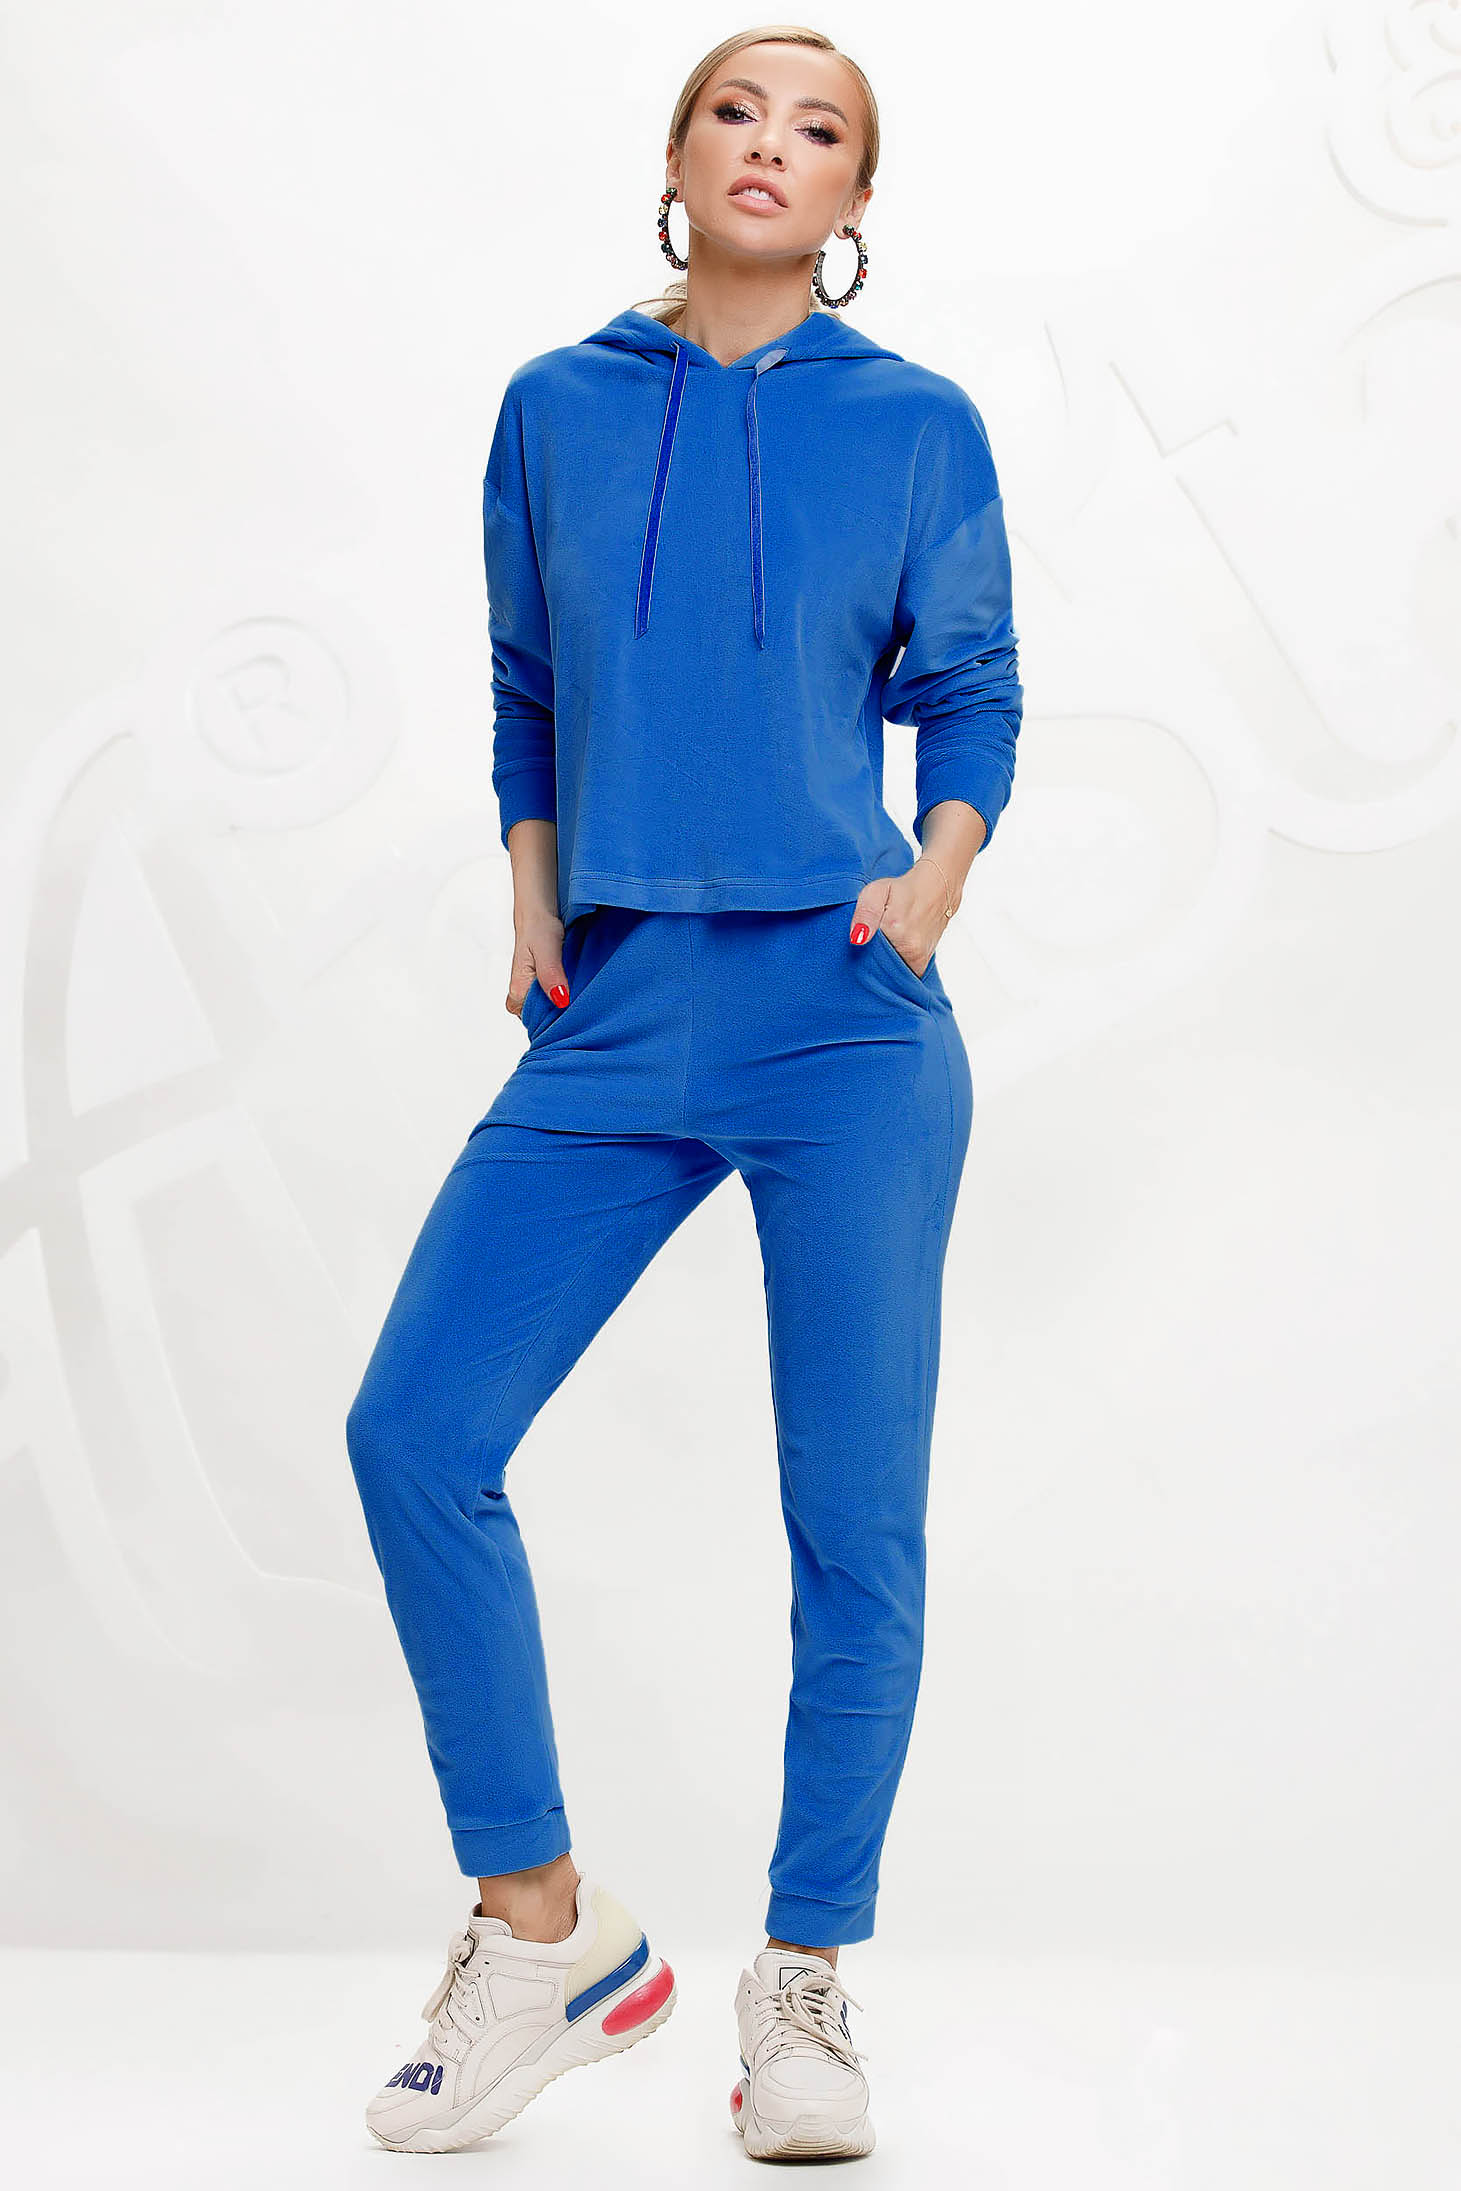 Blue sport 2 pieces 2 pieces loose fit with undetachable hood